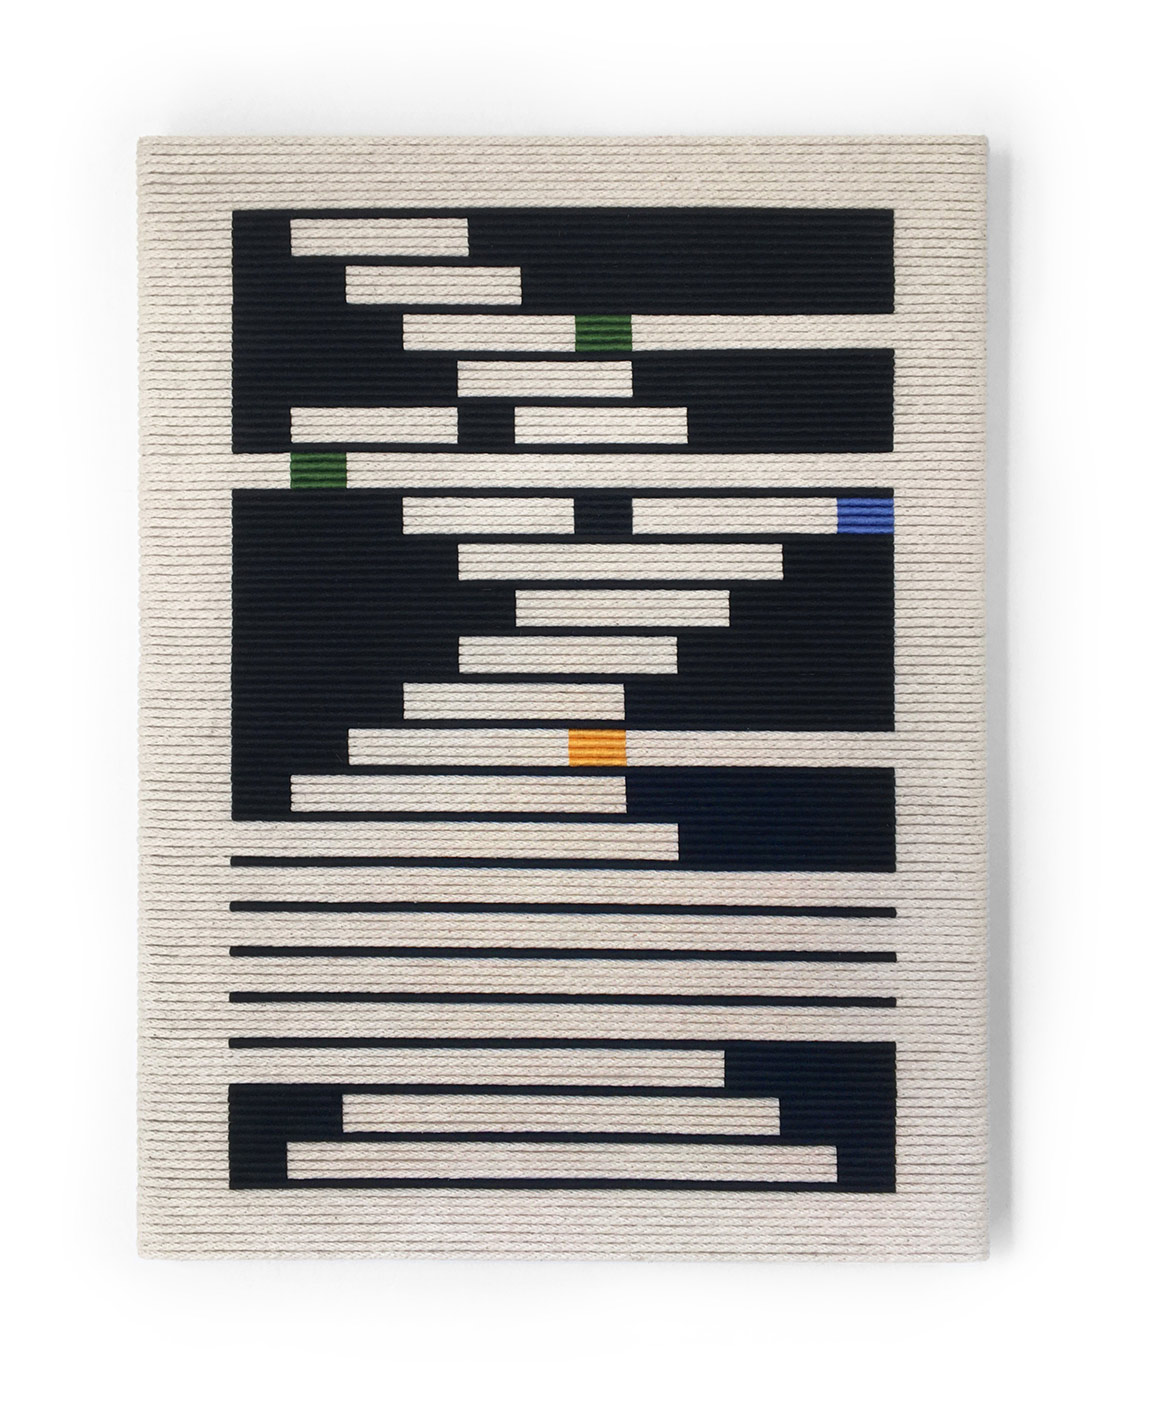 Senem Oezdogan, Momentum II, 2015, Wood, rope, and cotton, 24 x 18 inches  Courtesy of the artist and Uprise Art, New York